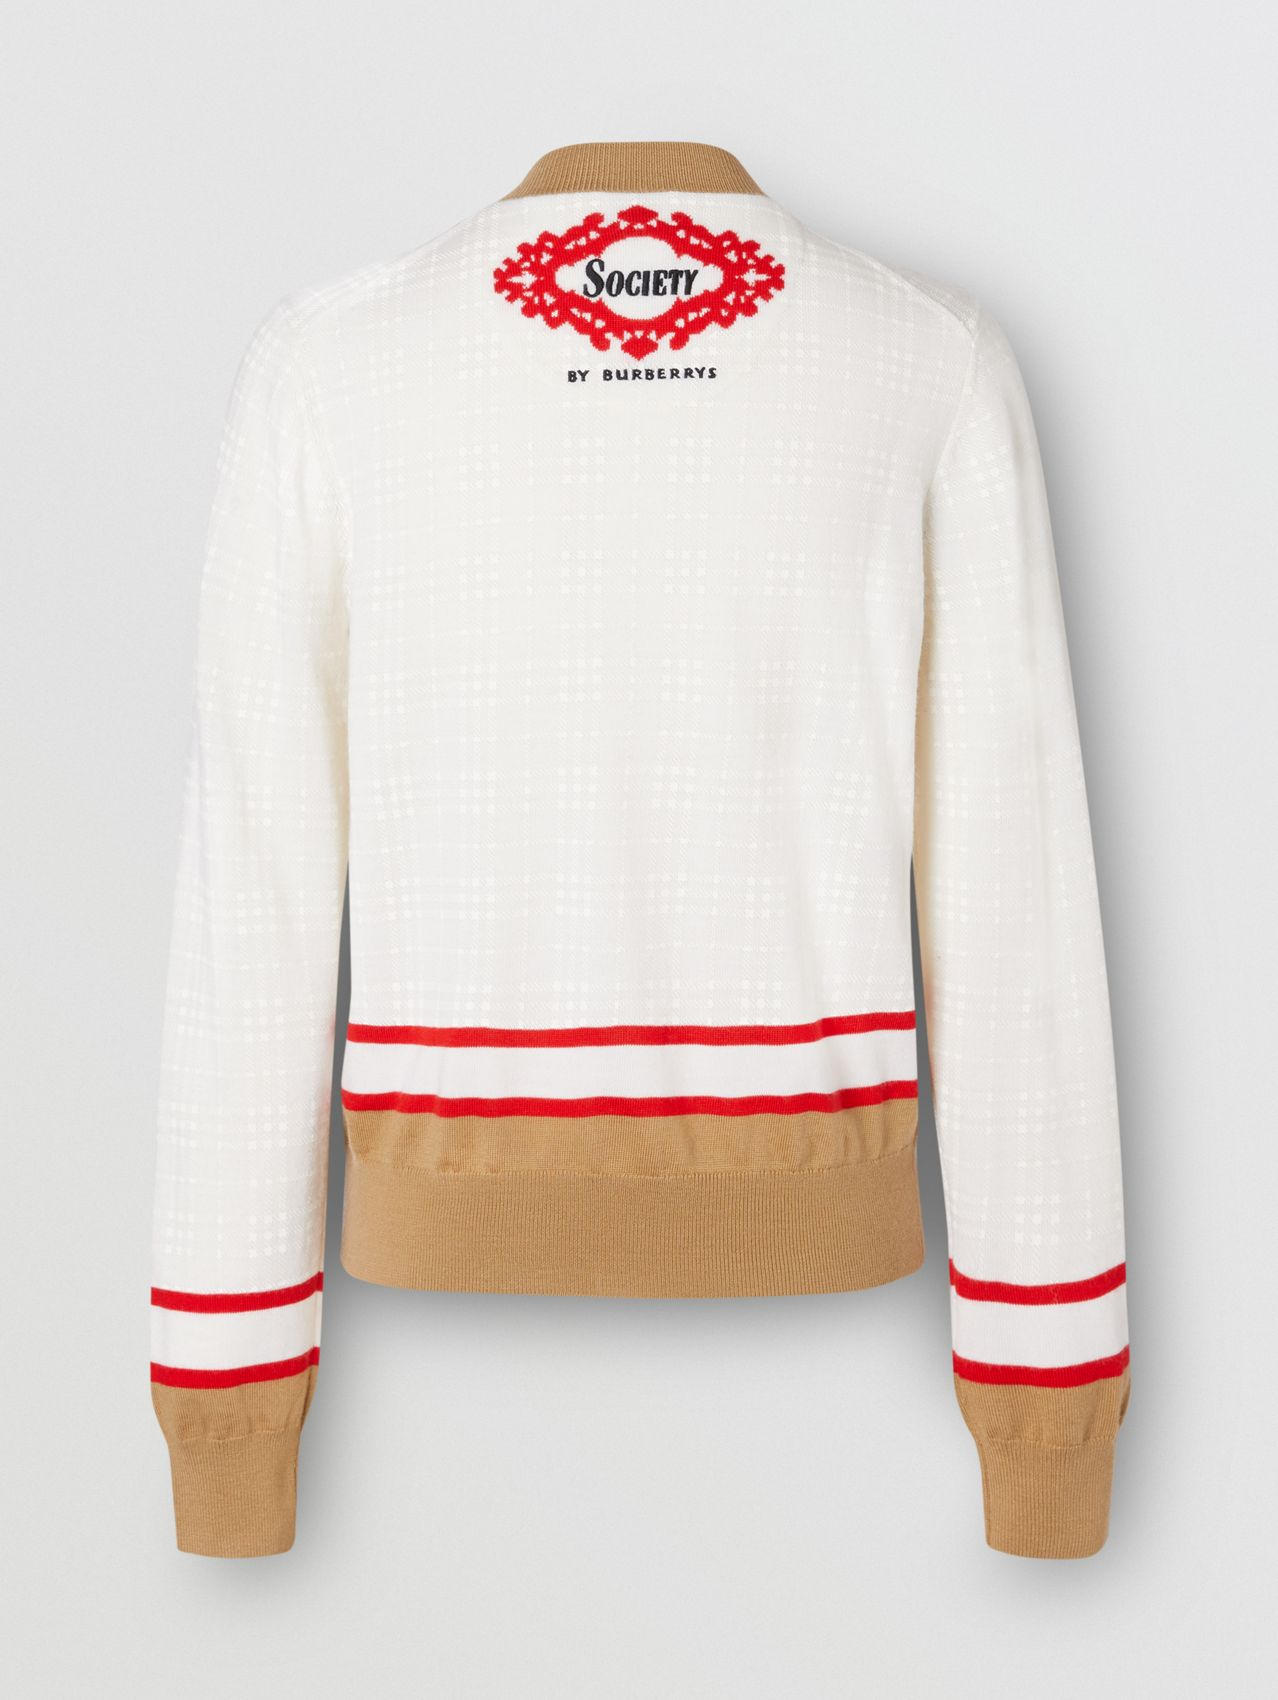 Archive Society Intarsia Wool Cardigan in White